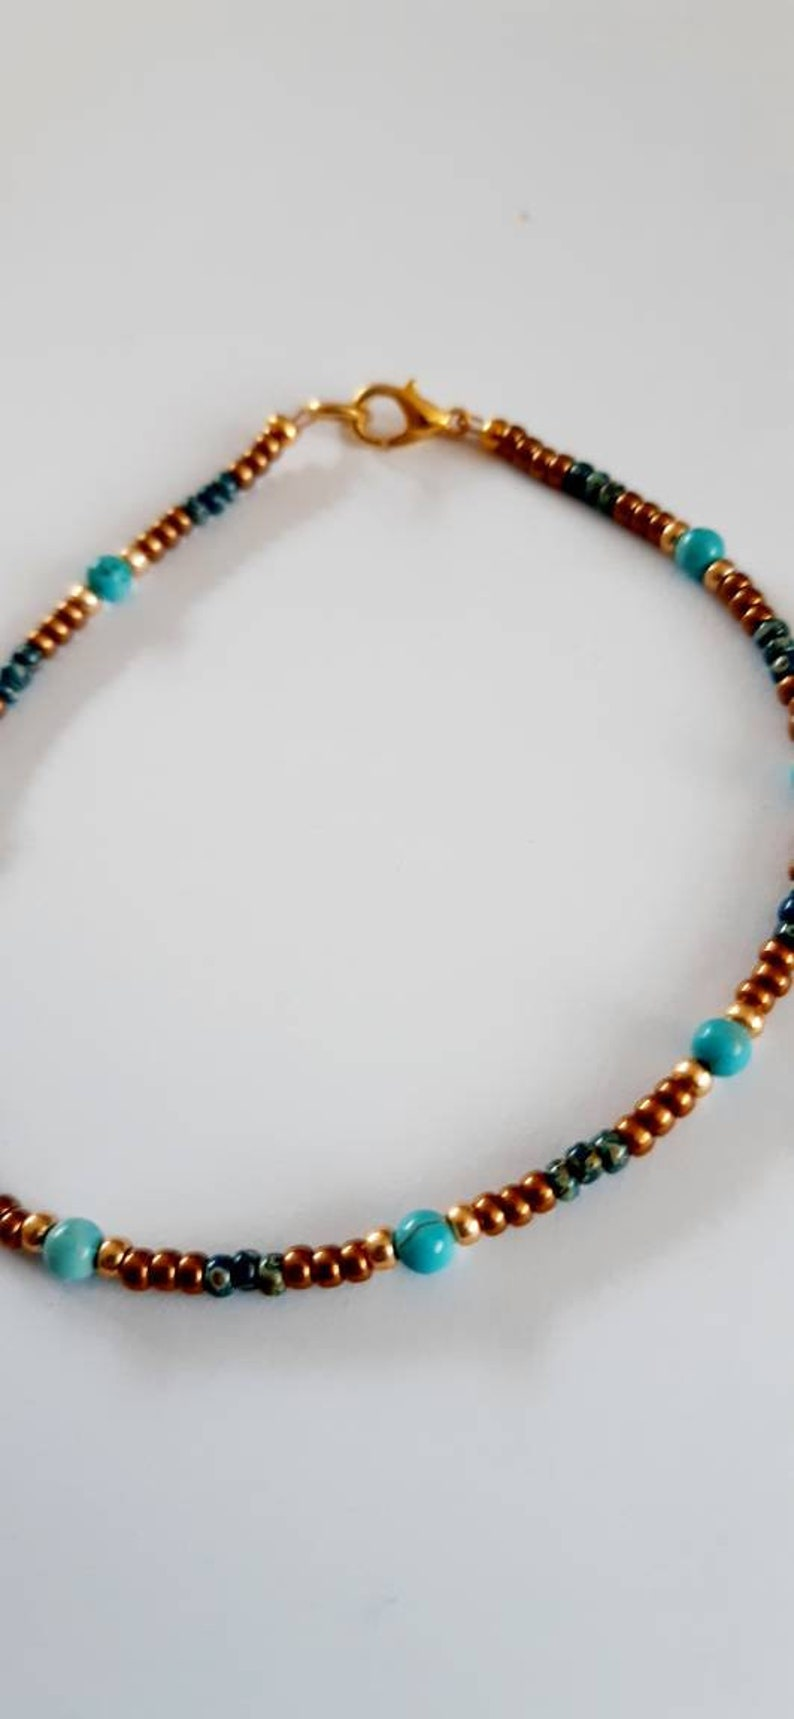 Bead anklet beaded anklet womens bead anklet ankle jewellery girl/'s anklet beachwear  ankle jewellery summer accessories Miyuki seed beads